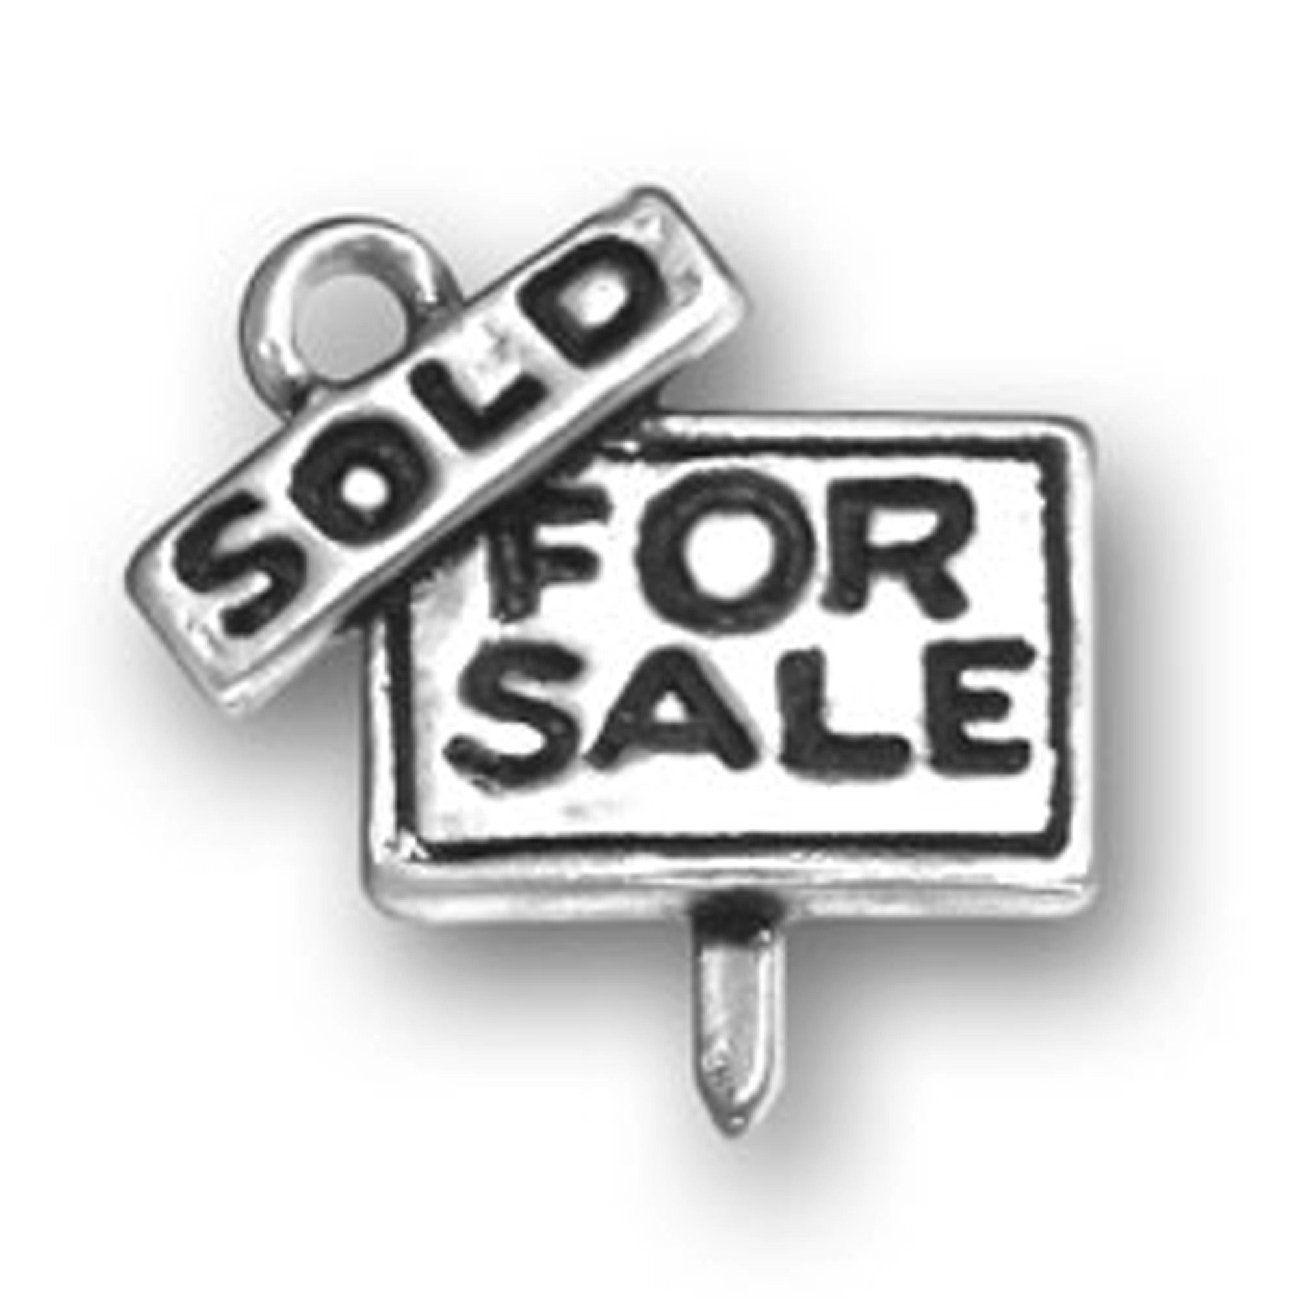 Sterling Silver Girls .8mm Box Chain 3D Realtors FOR SALE Sign SOLD Pendant Necklace